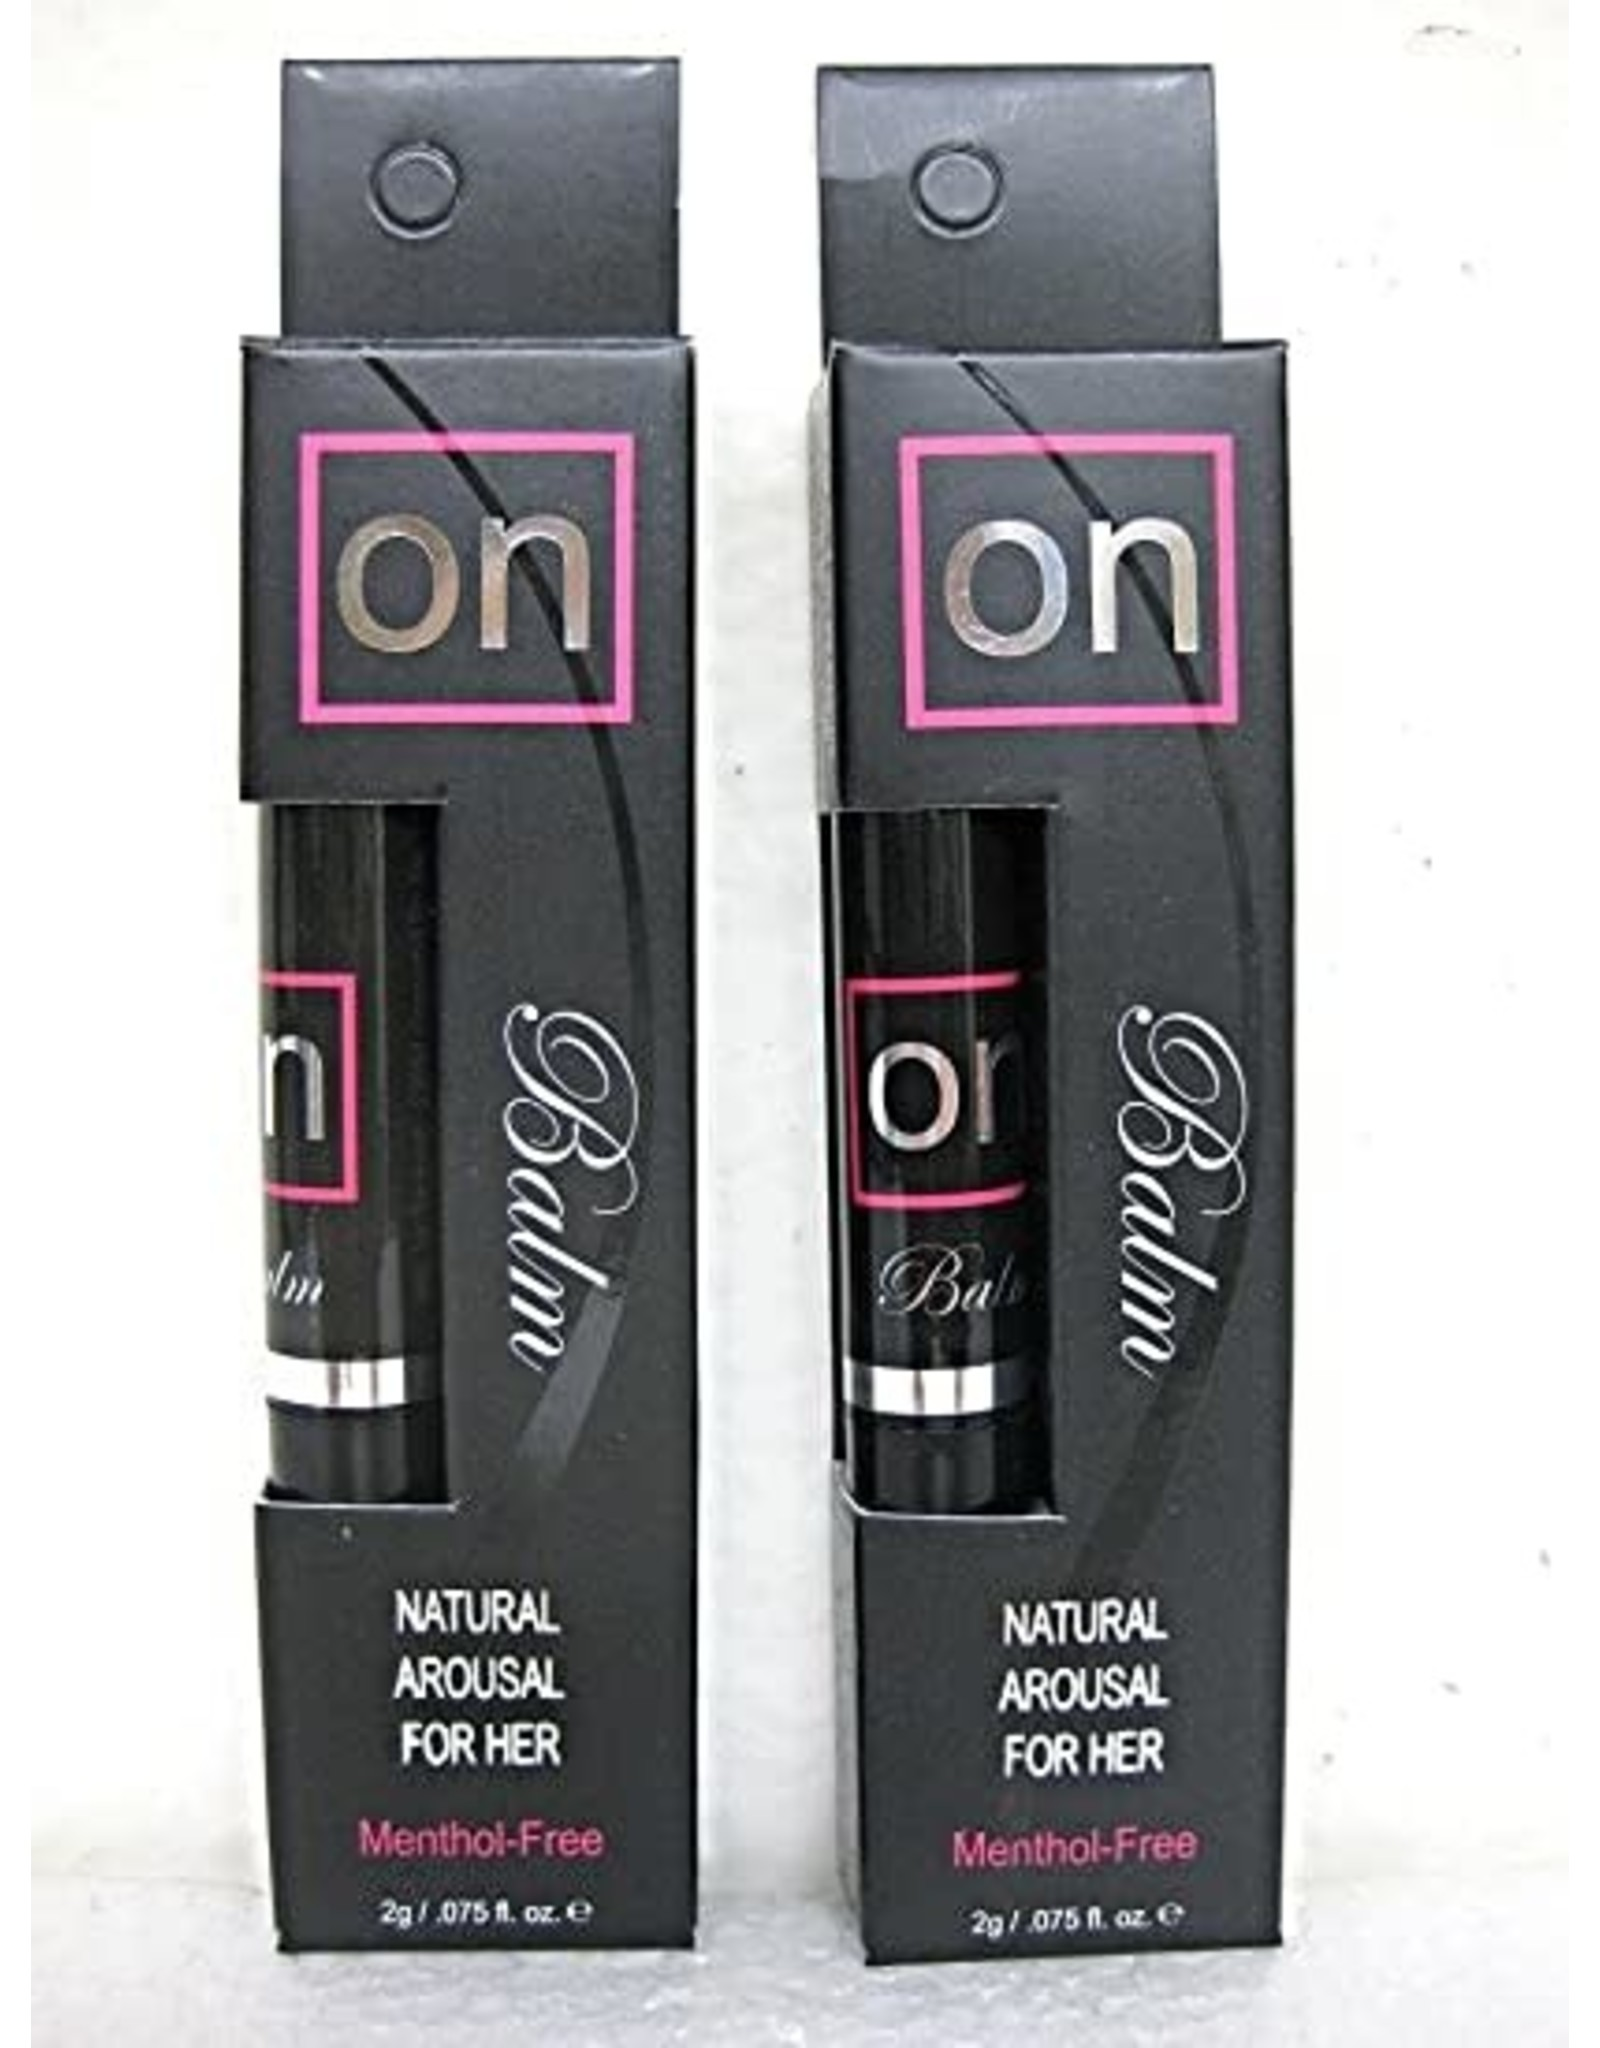 Sensuva On! balm arousal stick